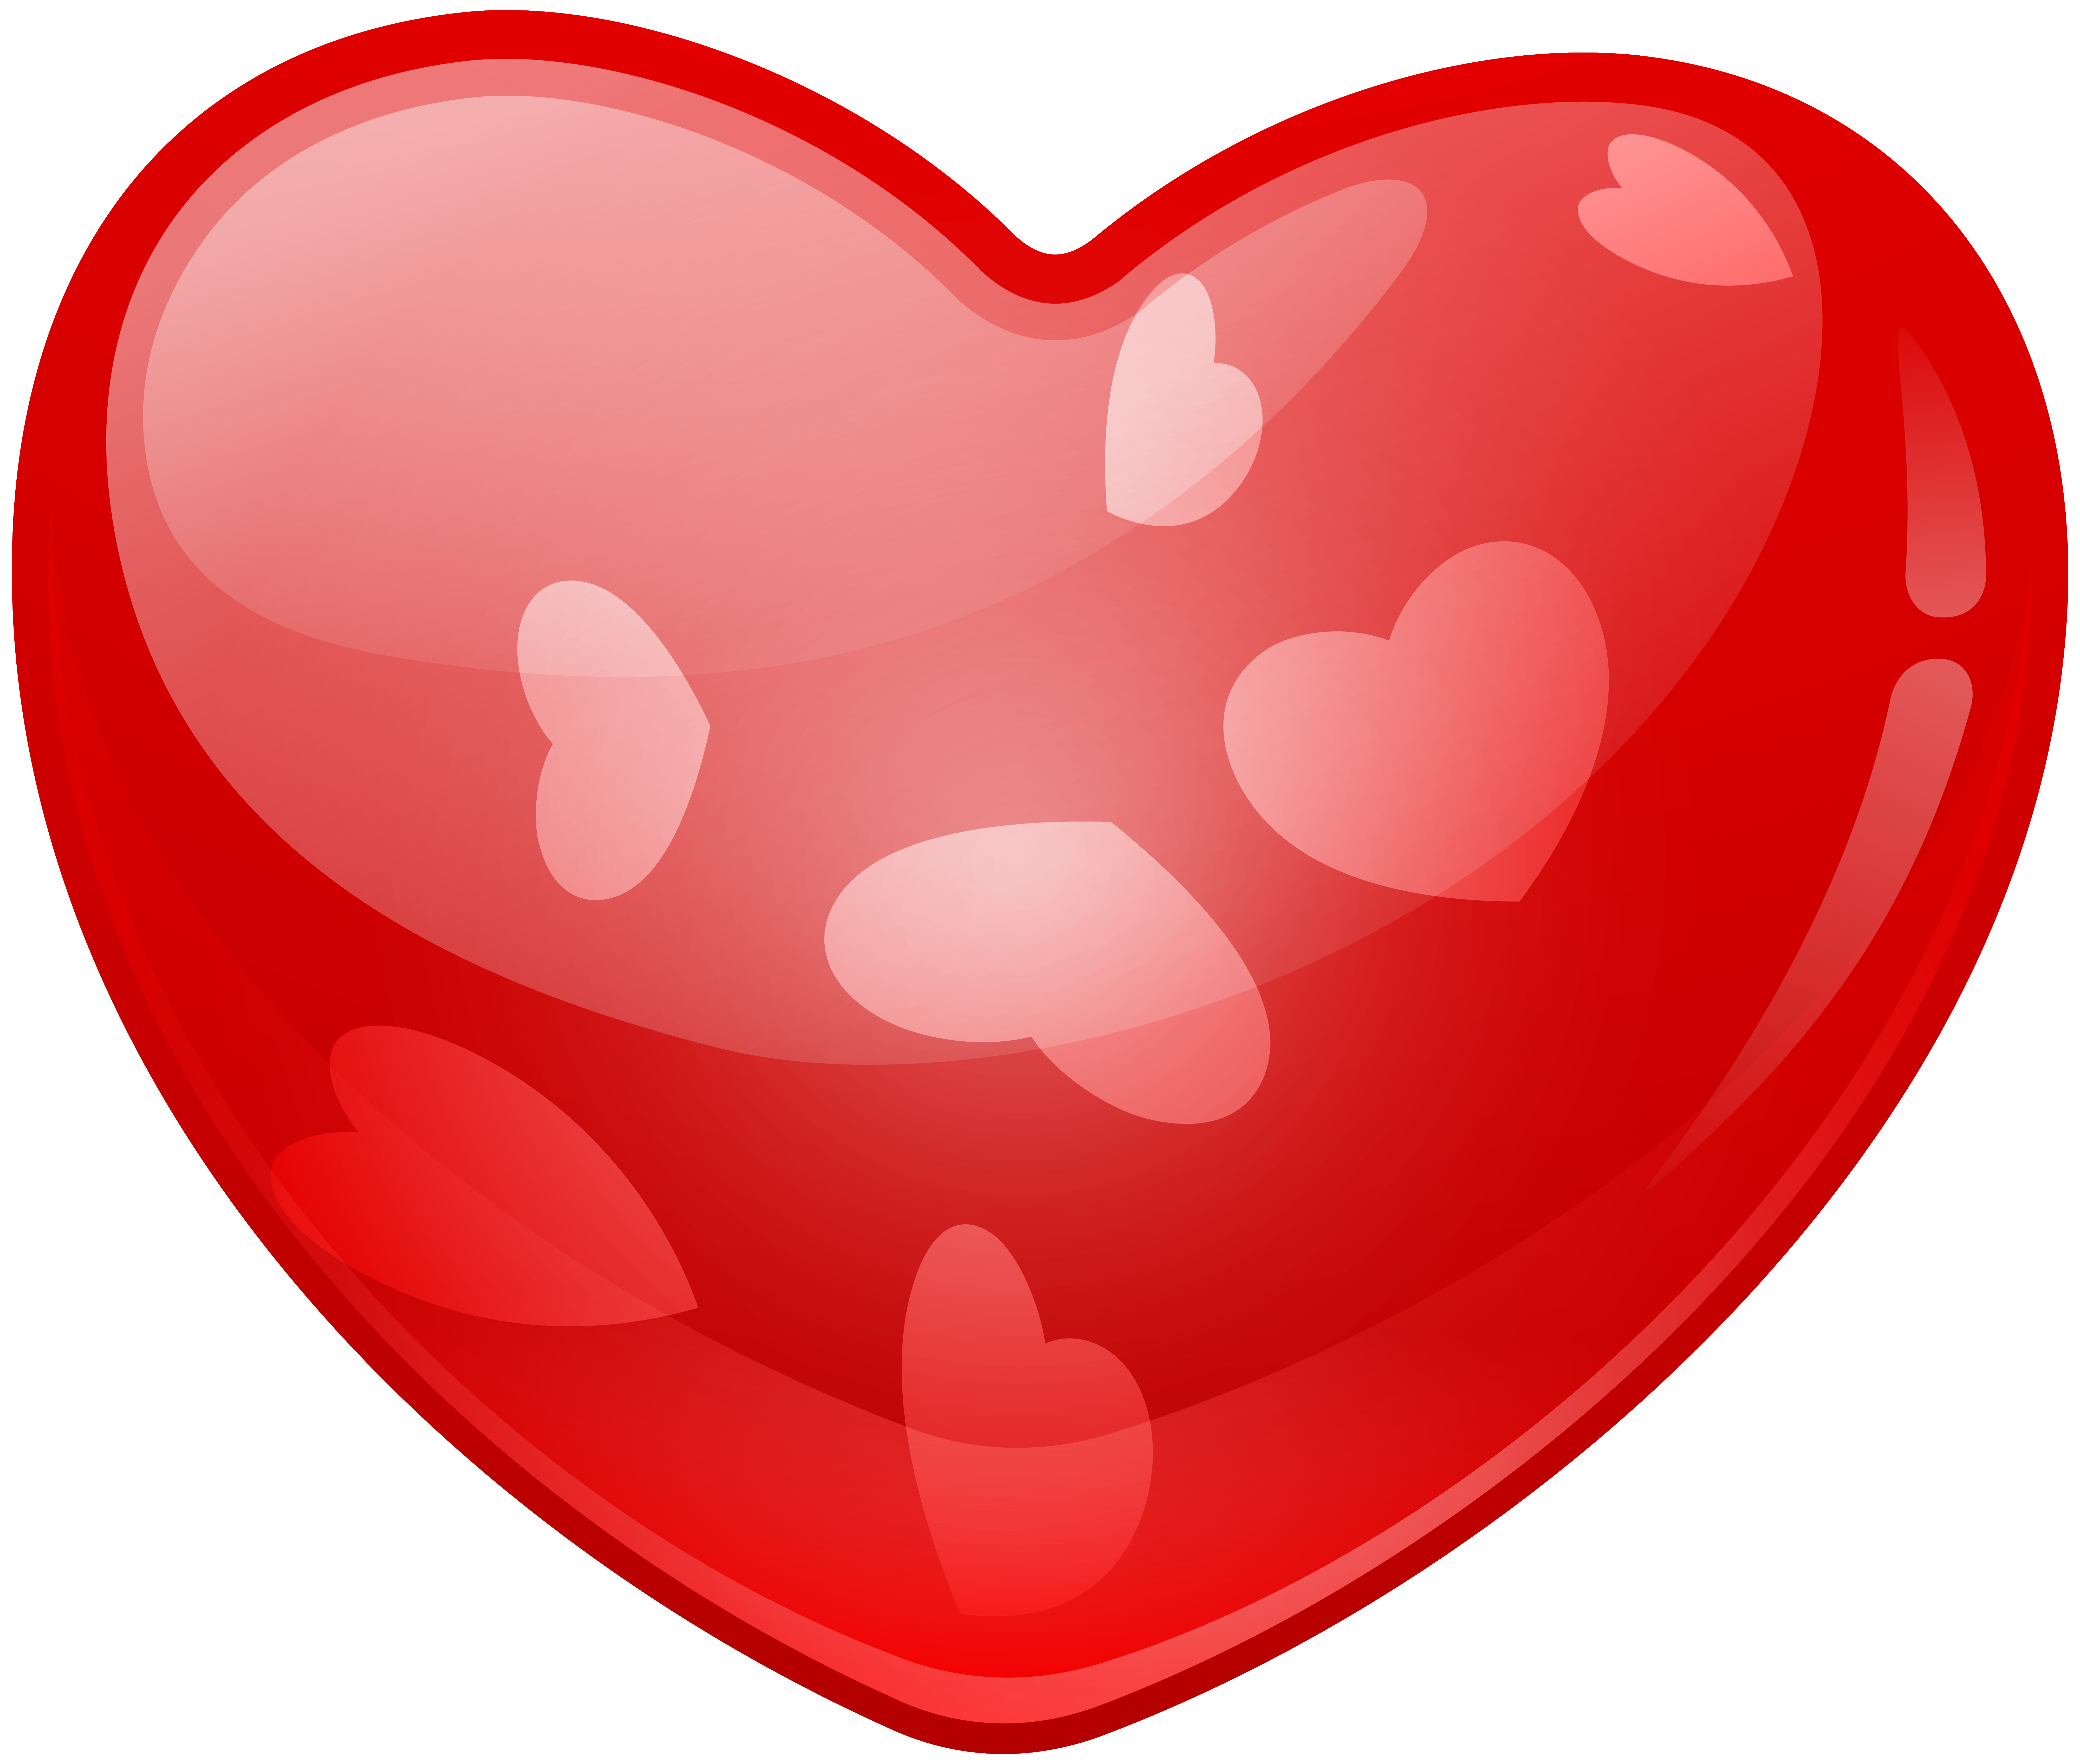 Hearts clipart png. Heart for kids at